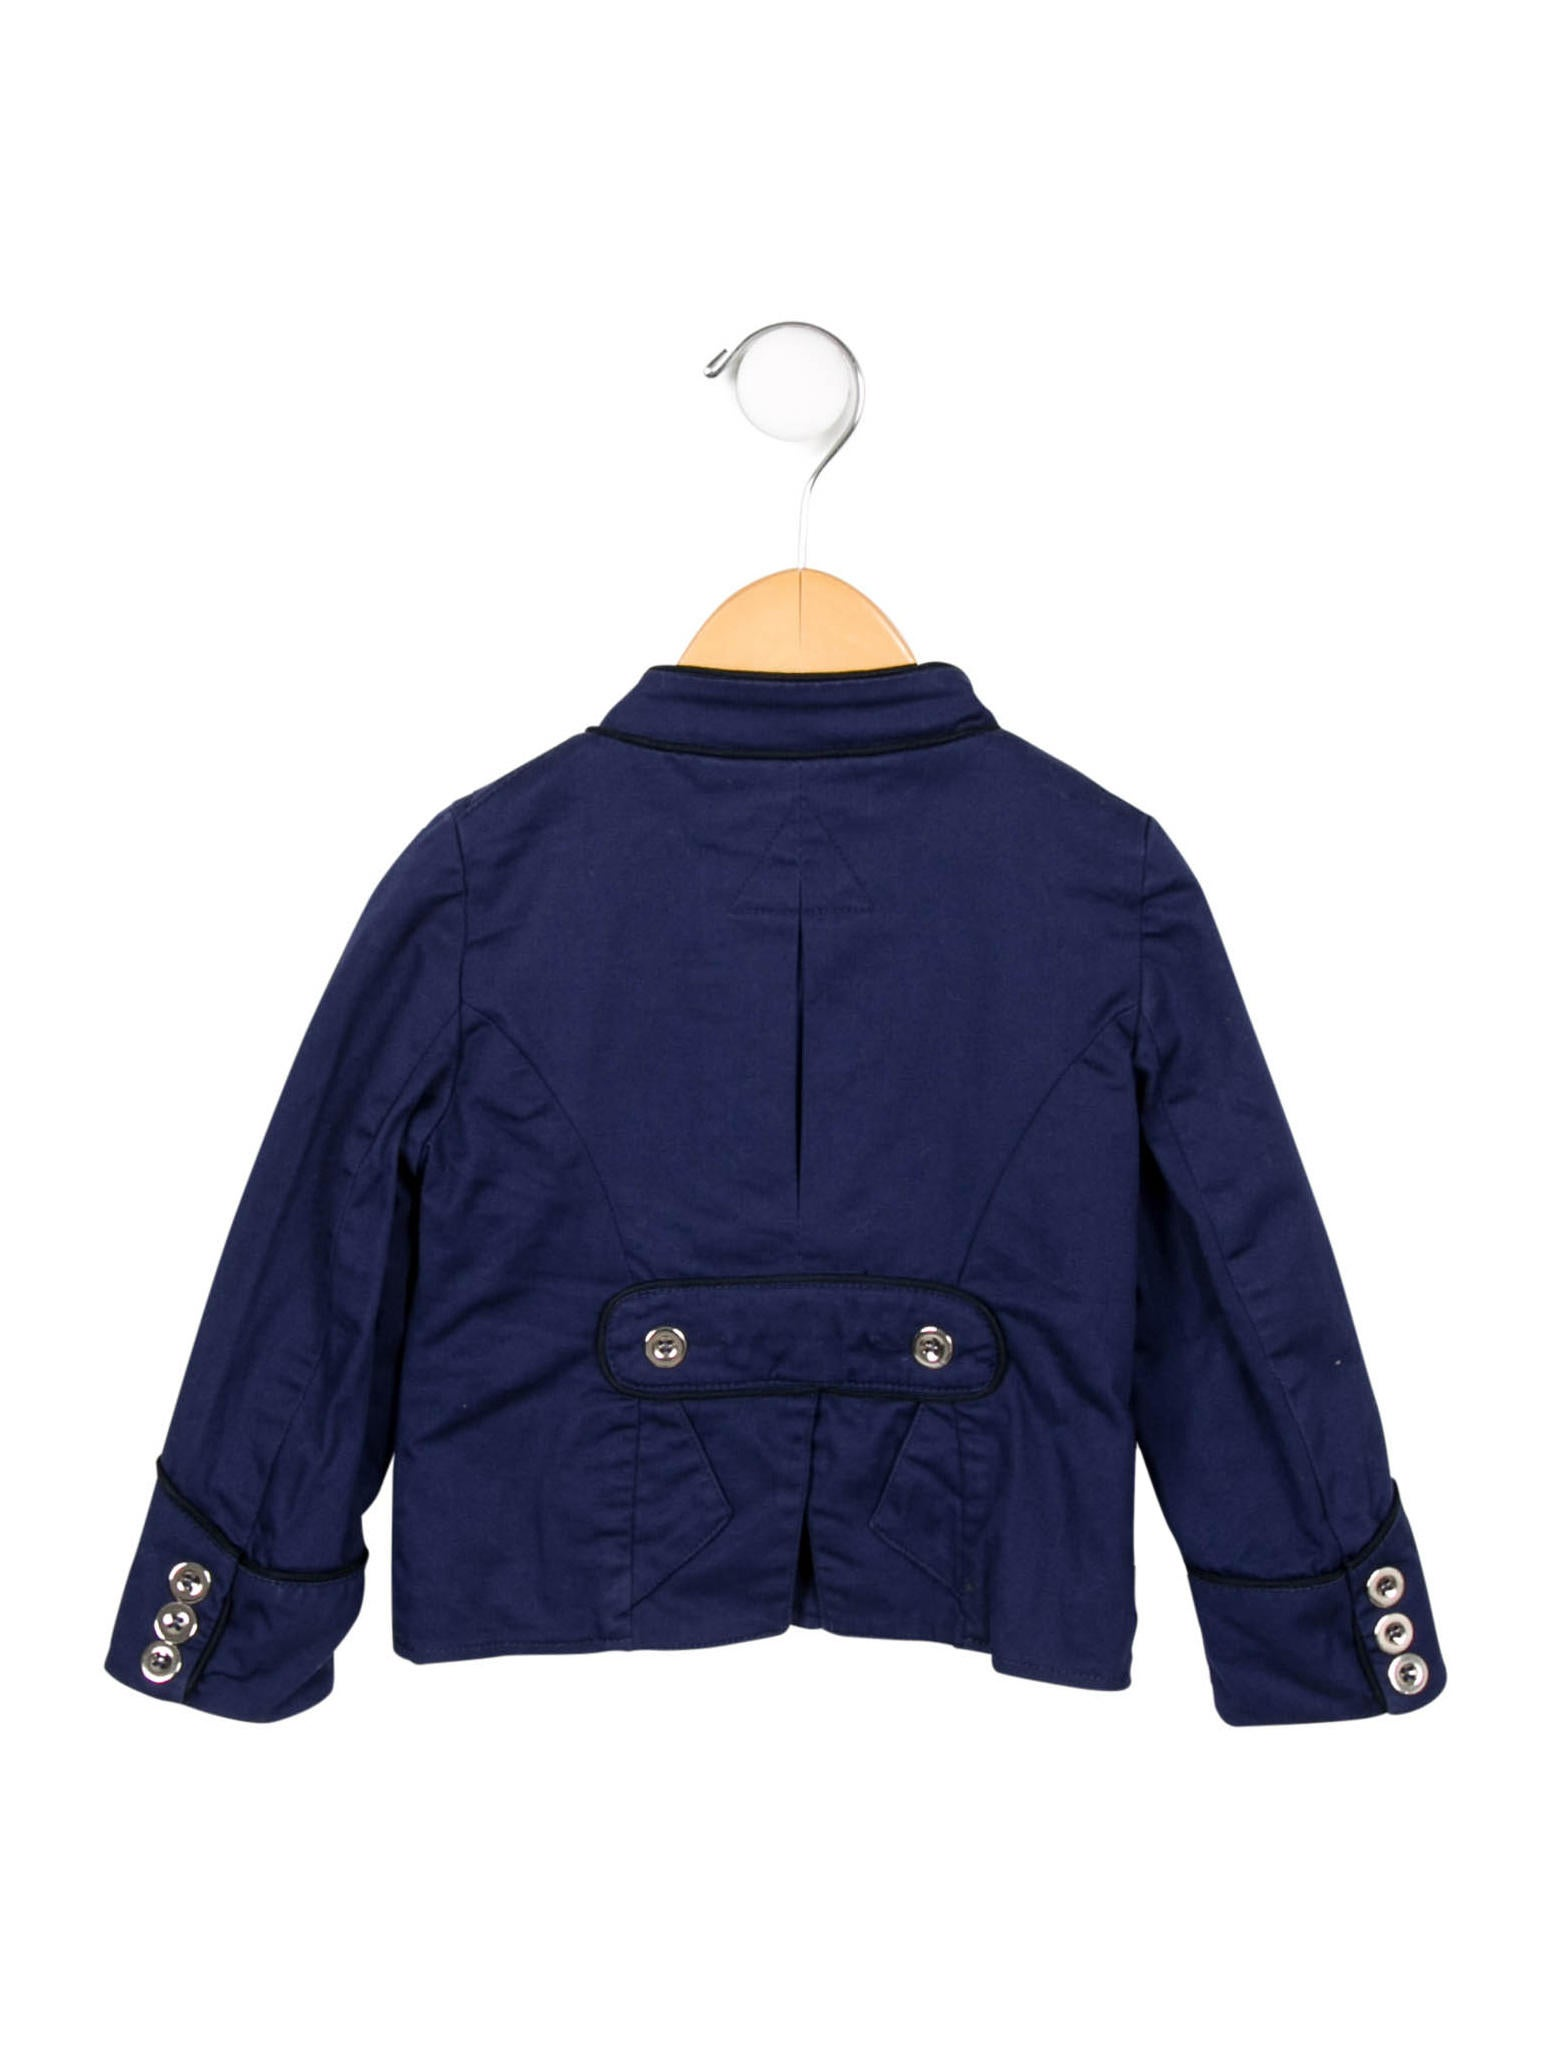 Lightweight Girls Jackets - results from brands North Face, Columbia, Adidas, products like New York Yankees Columbia Youth Girl's Plush Fleece Jacket - Black, Size: Youth XL, Columbia Kids - Switchback Rain Jacket (Toddler) (Grape Gum) Girl's Coat, Ralph Lauren Little Girls Lightweight Down Jacket - Nevis 6X.